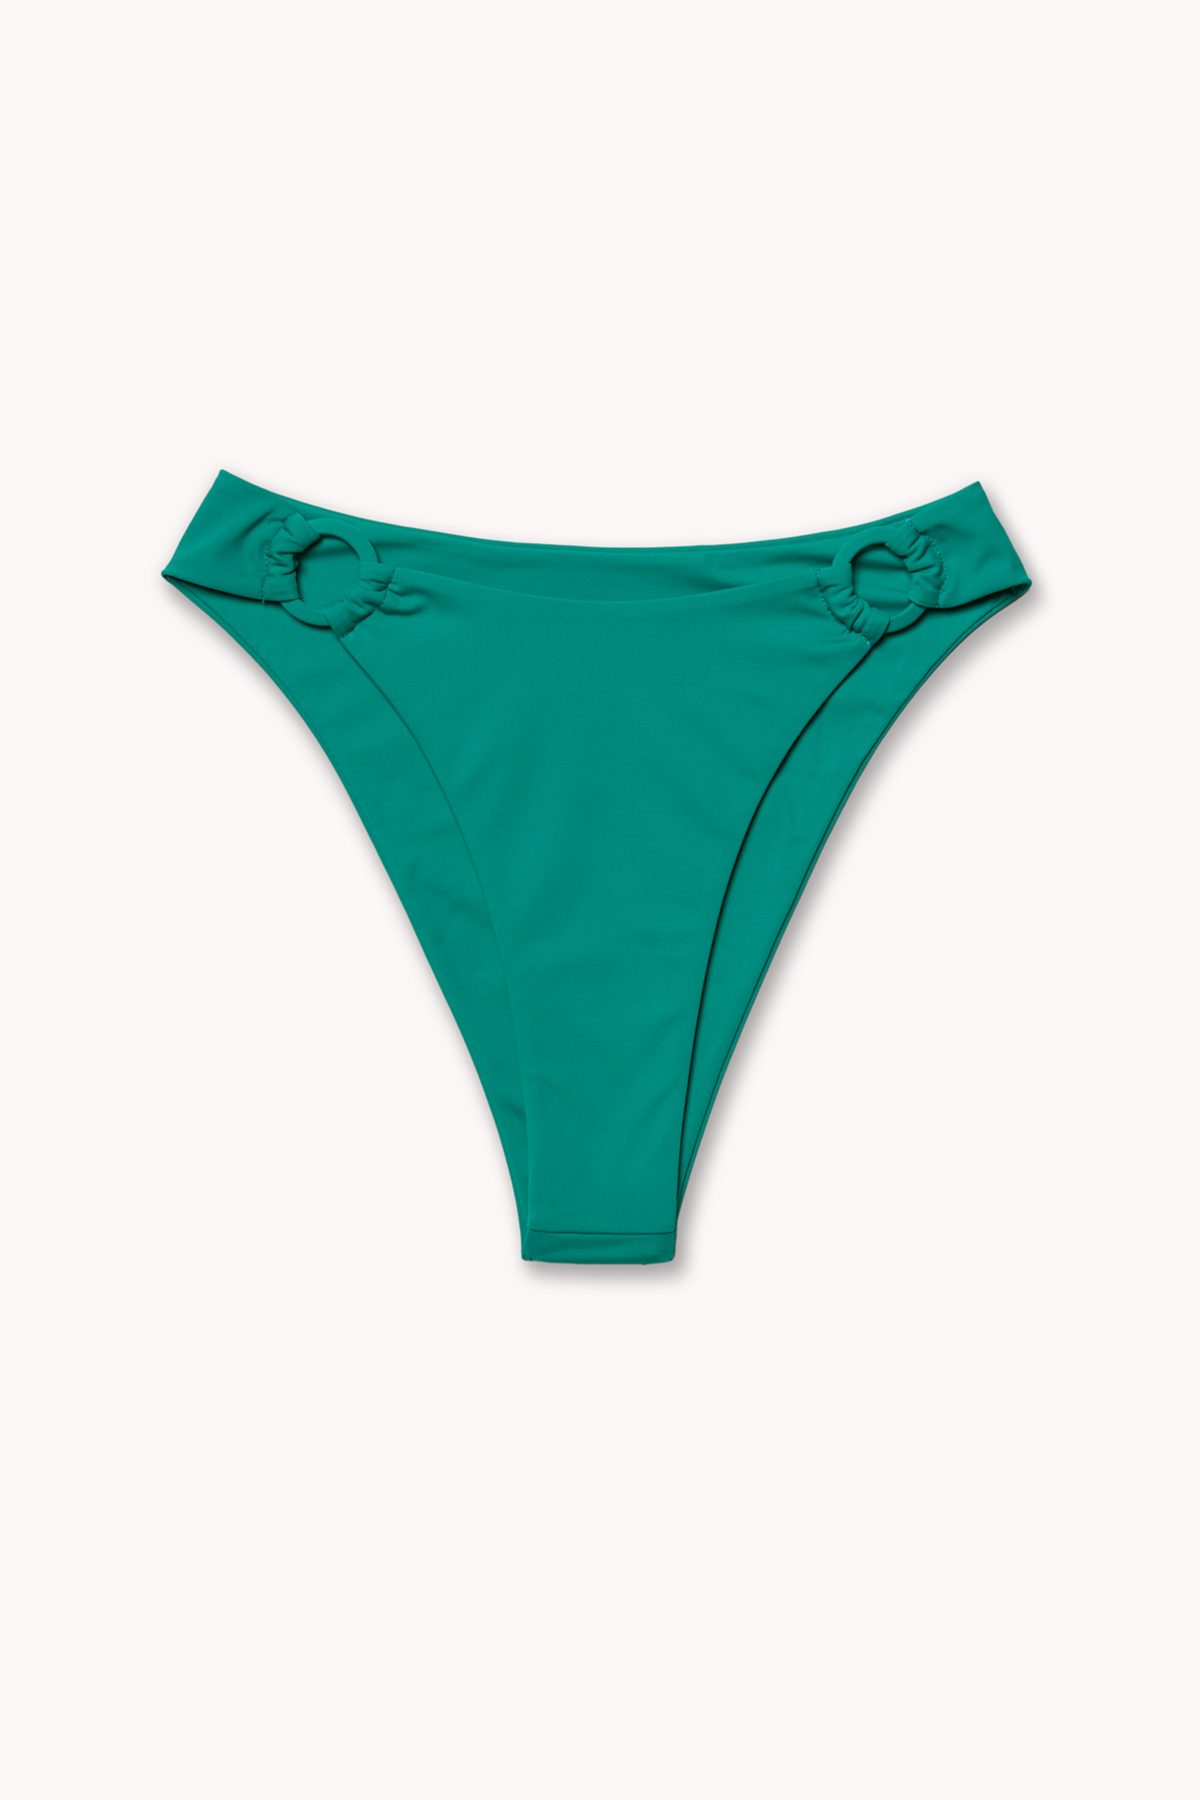 E-comm shot of green Monaco bikini bottom by Ookioh